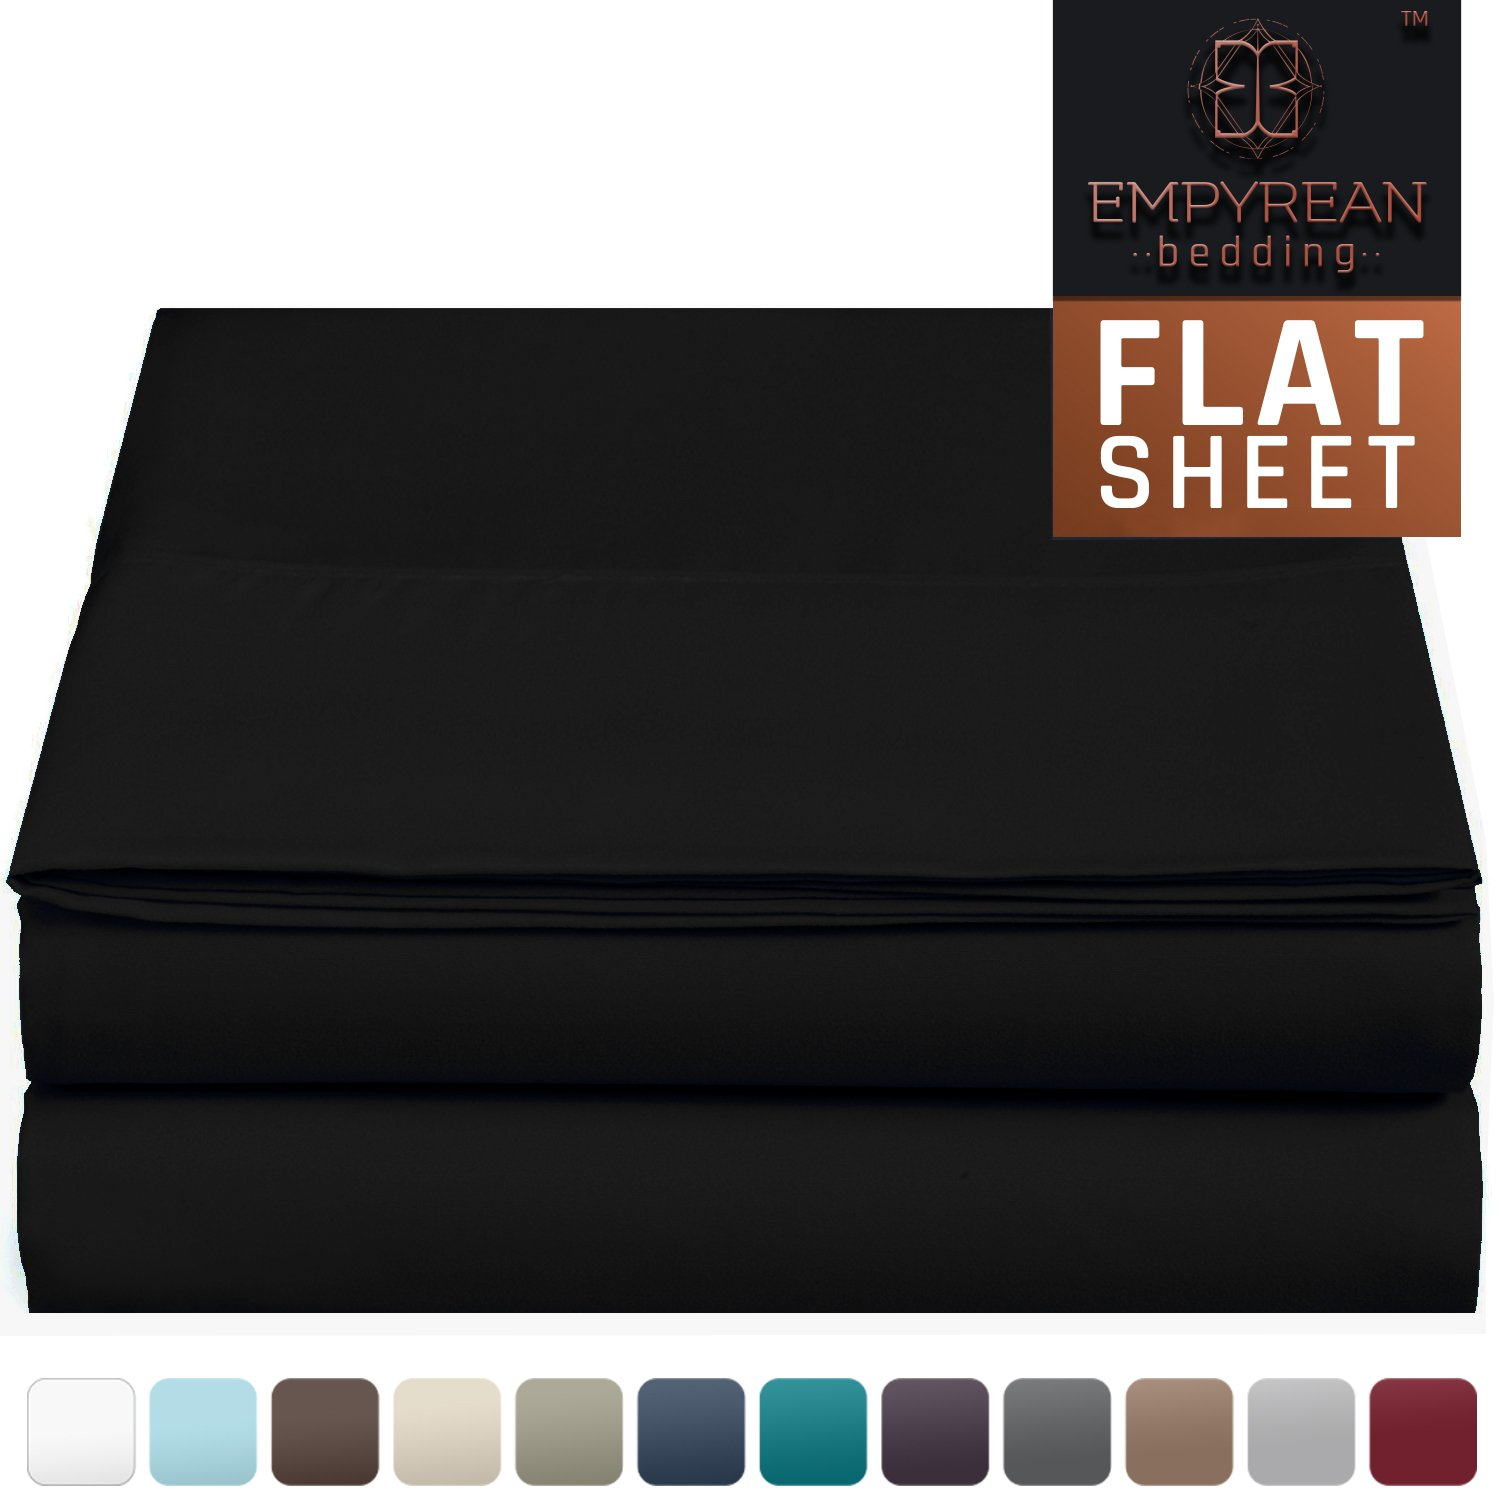 "Premium Flat Sheet – ""110 GSM"" Double Brushed Microfiber Extra Thick and Comfortable Highest Quality Flat Sheets, Luxurious & Soft Hotel Single Top Bed Sheet Hypoallergenic, Full, Black"